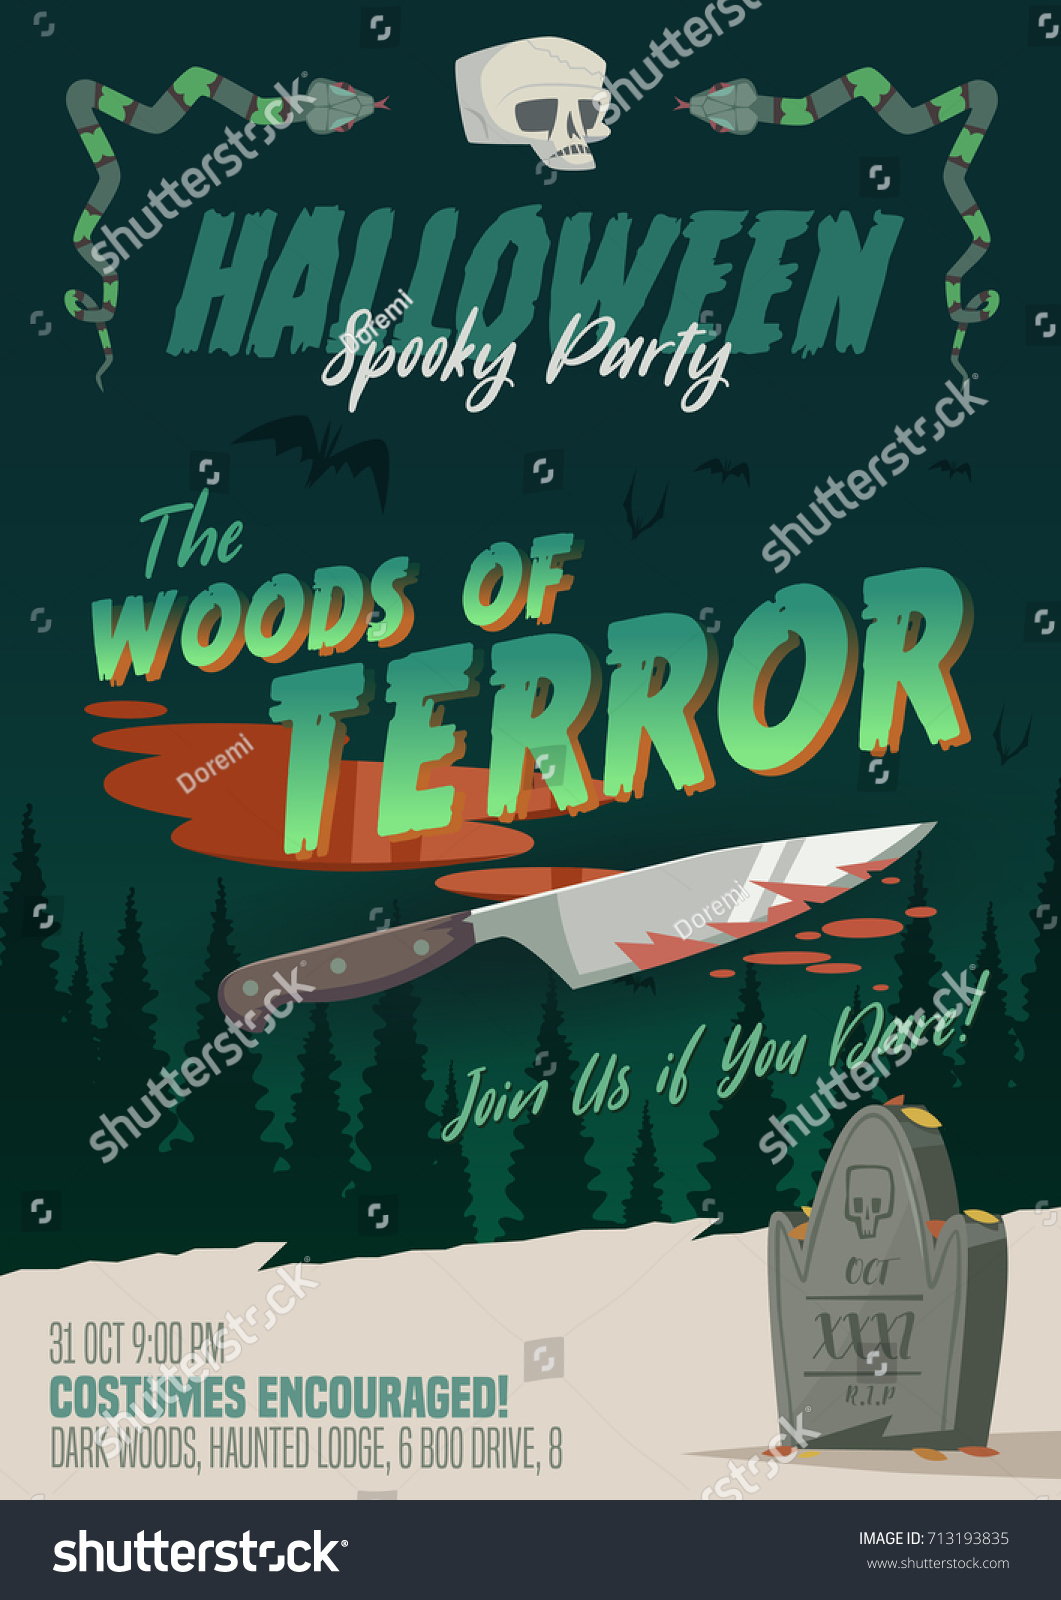 Scary Halloween Party Invitationcardbackground Vector Illustration – Scary or Horror Invitation Cards